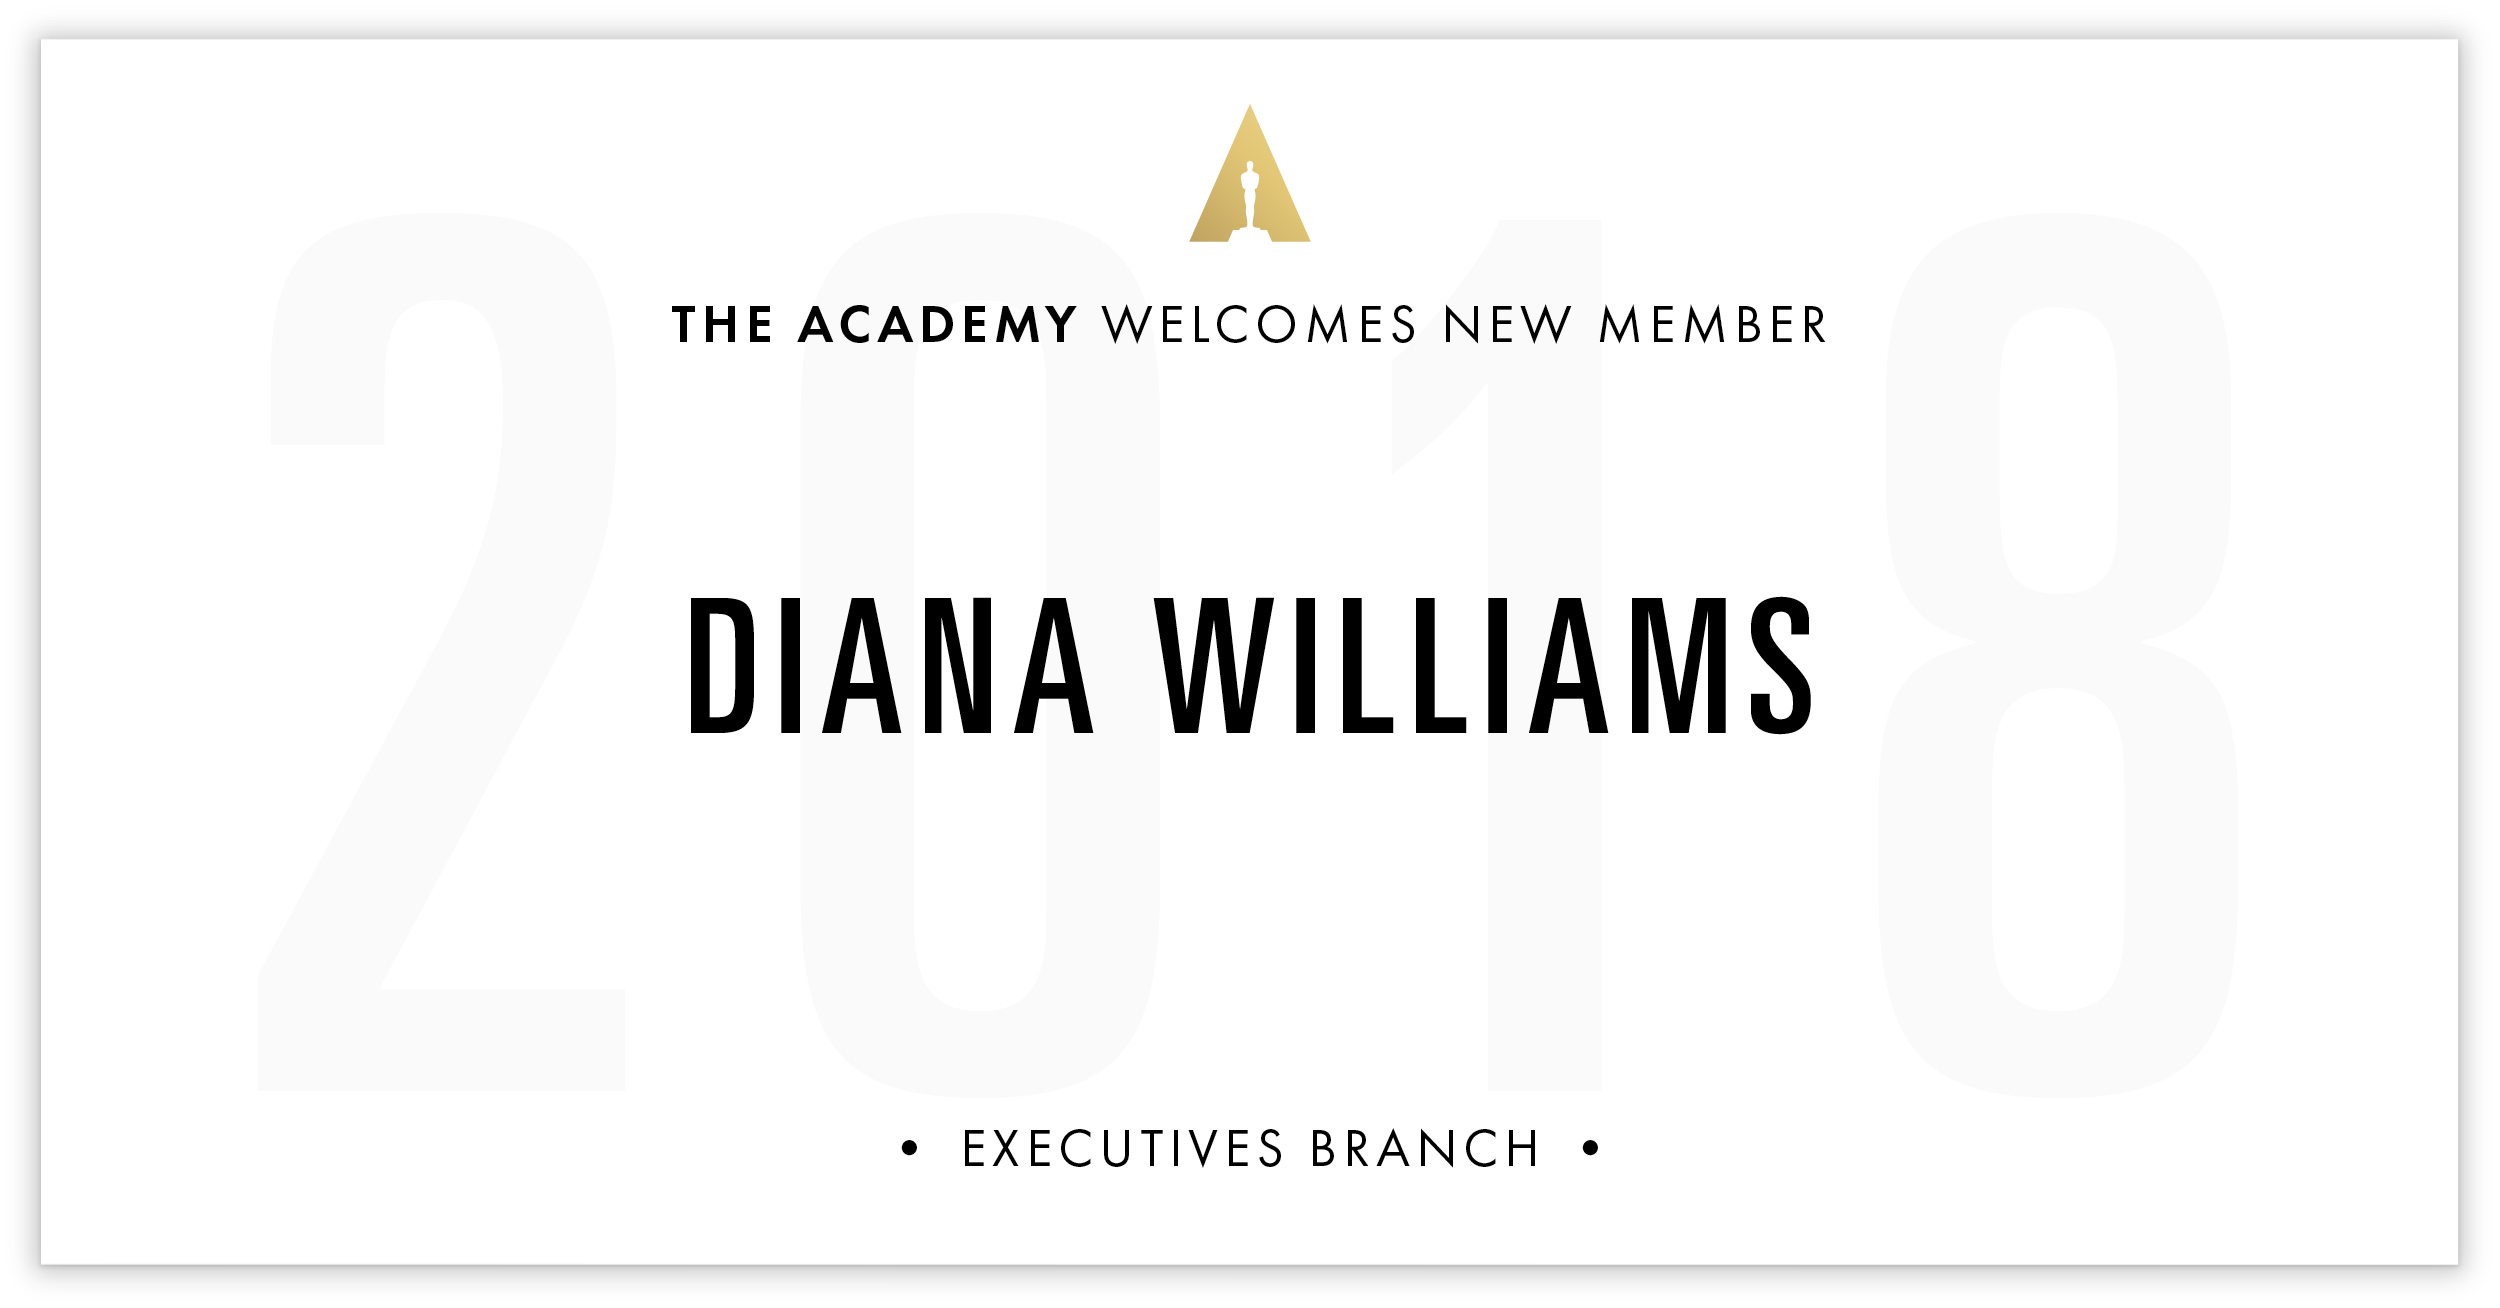 Diana Williams is invited!